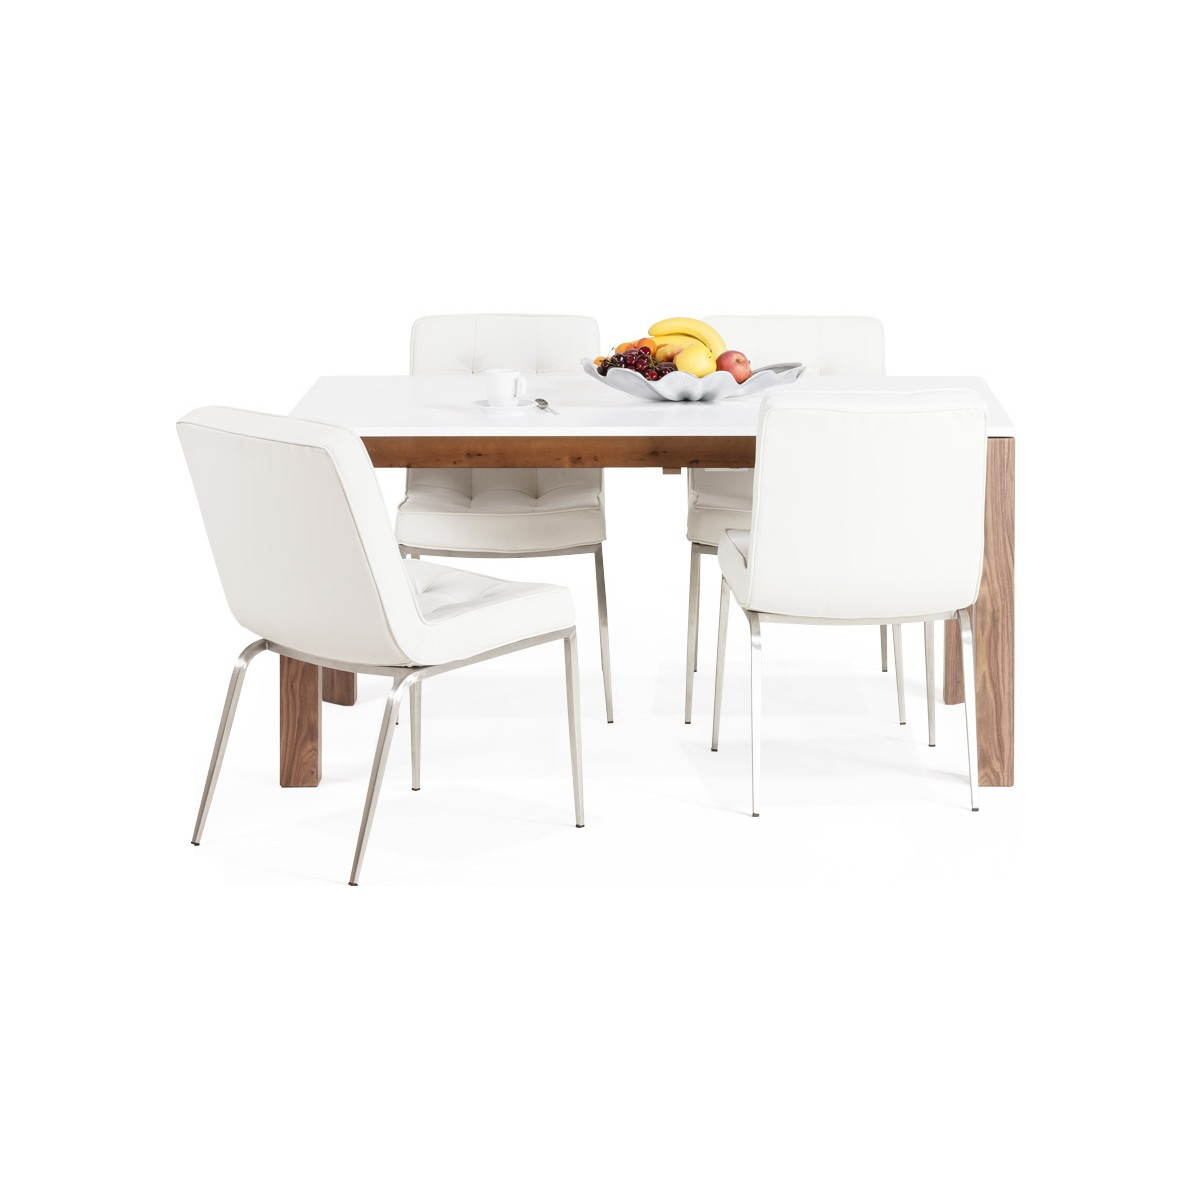 Table bois blanc for Table rectangulaire avec rallonge